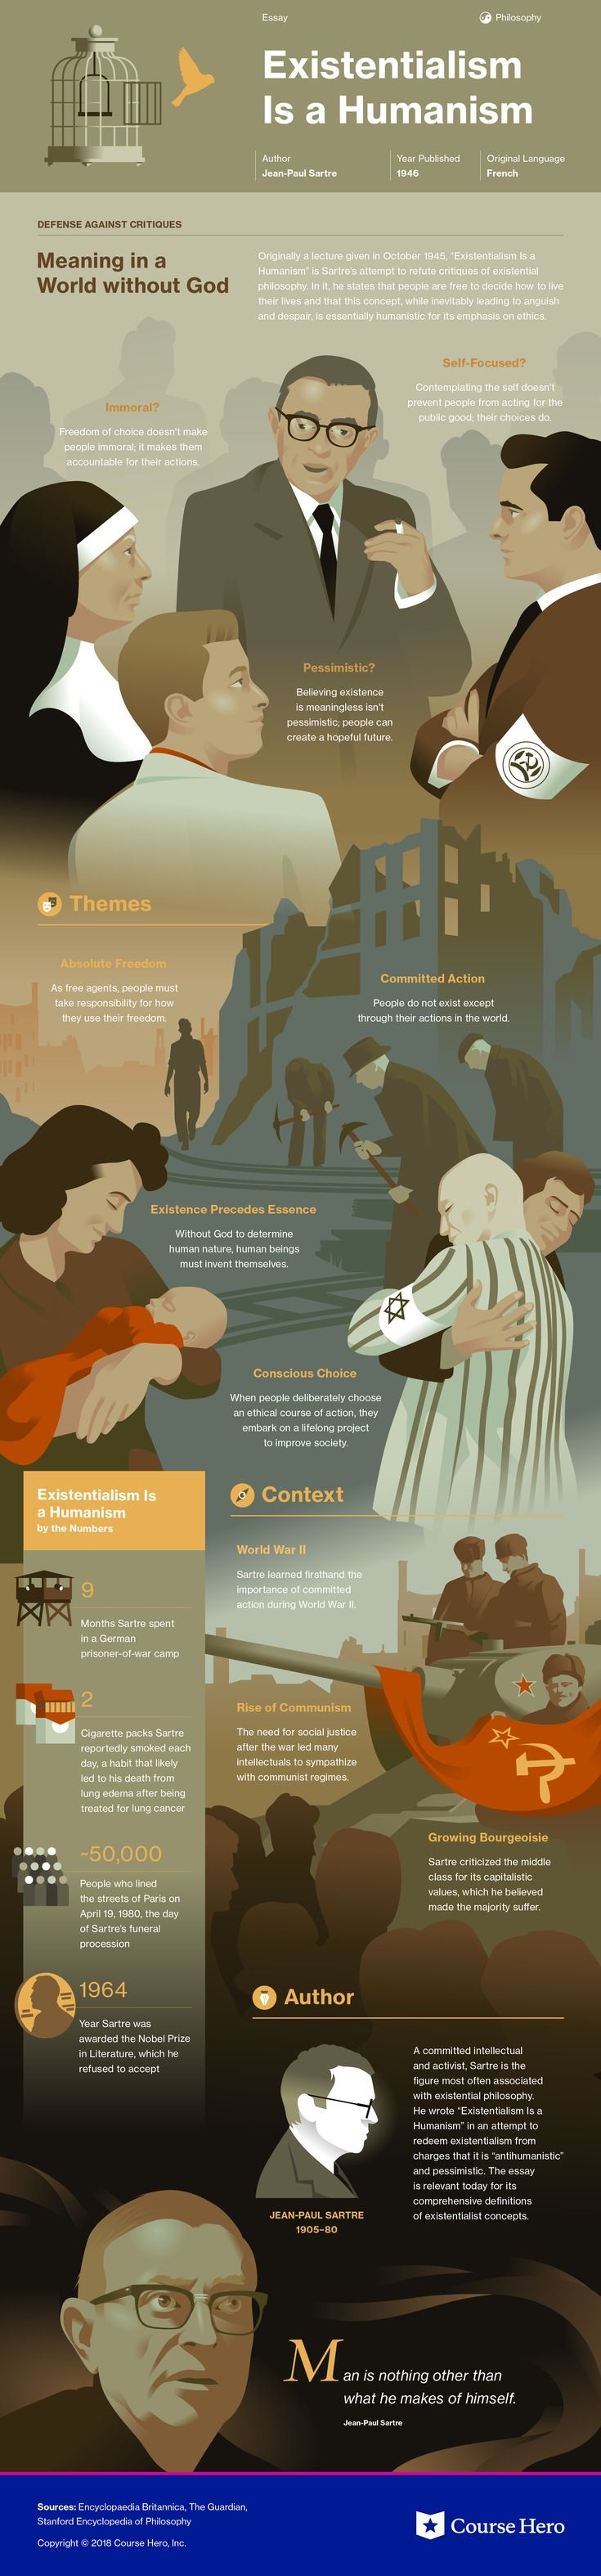 This @CourseHero infographic on Existentialism Is a Humanism is both visually stunning and informative!